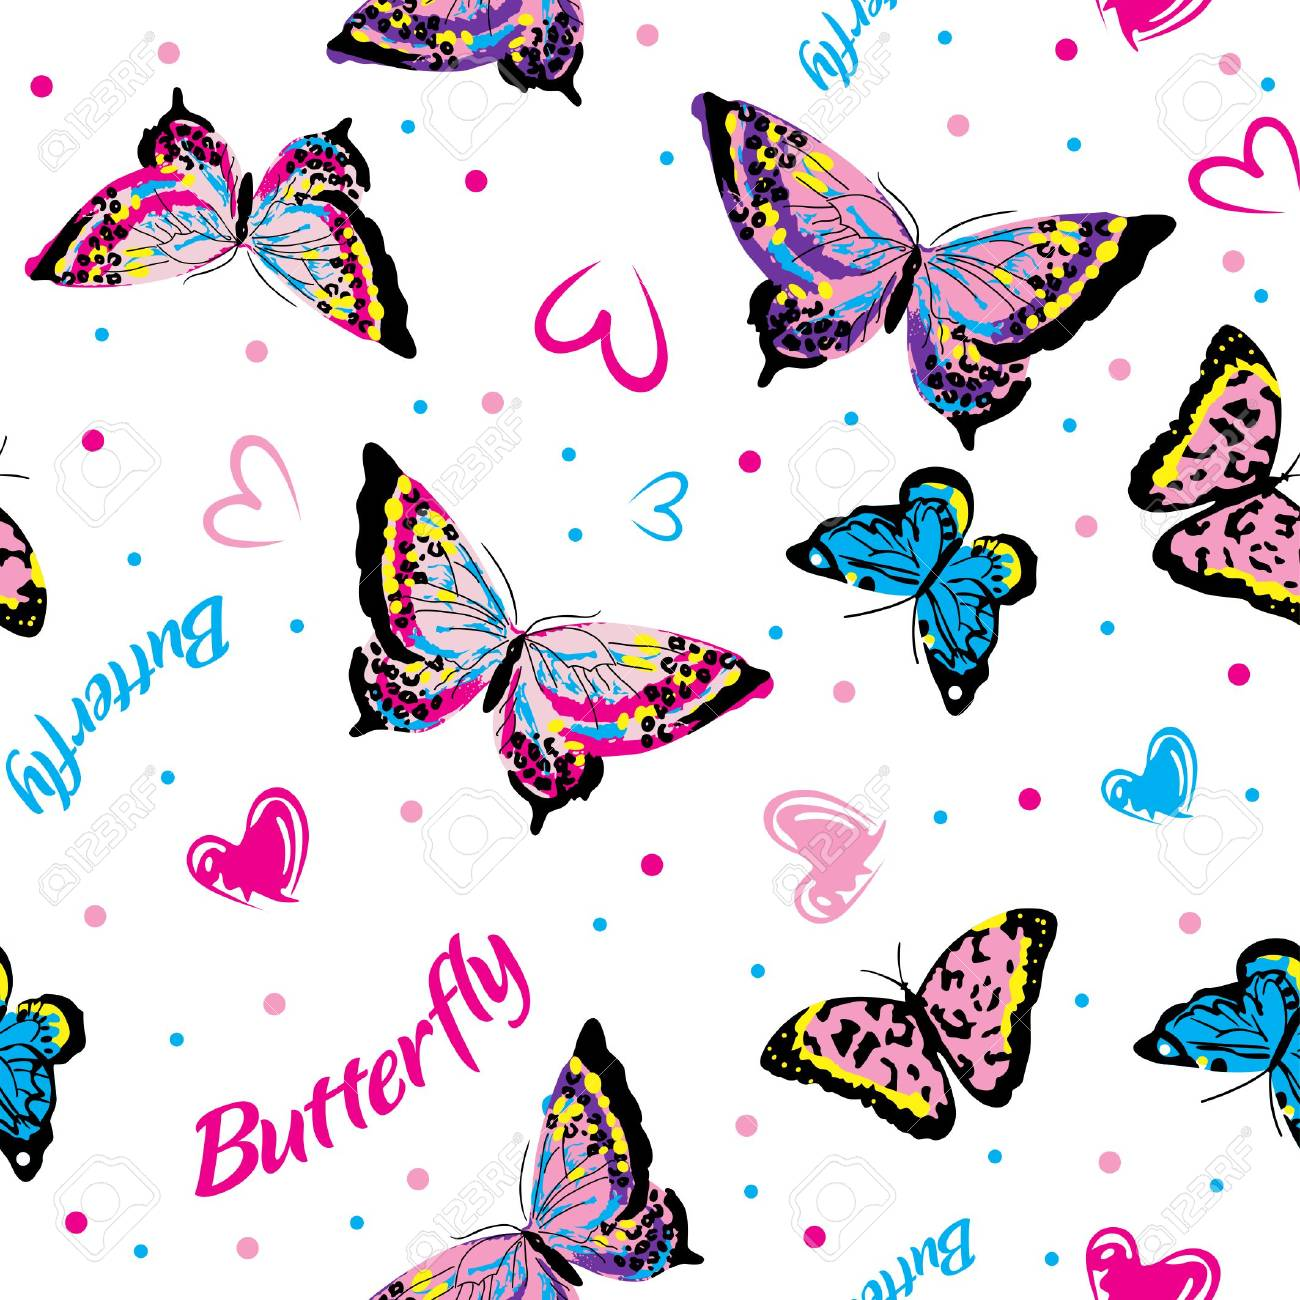 Butterfly Seamless Pattern For Fabric Graphic Design Royalty Free ...